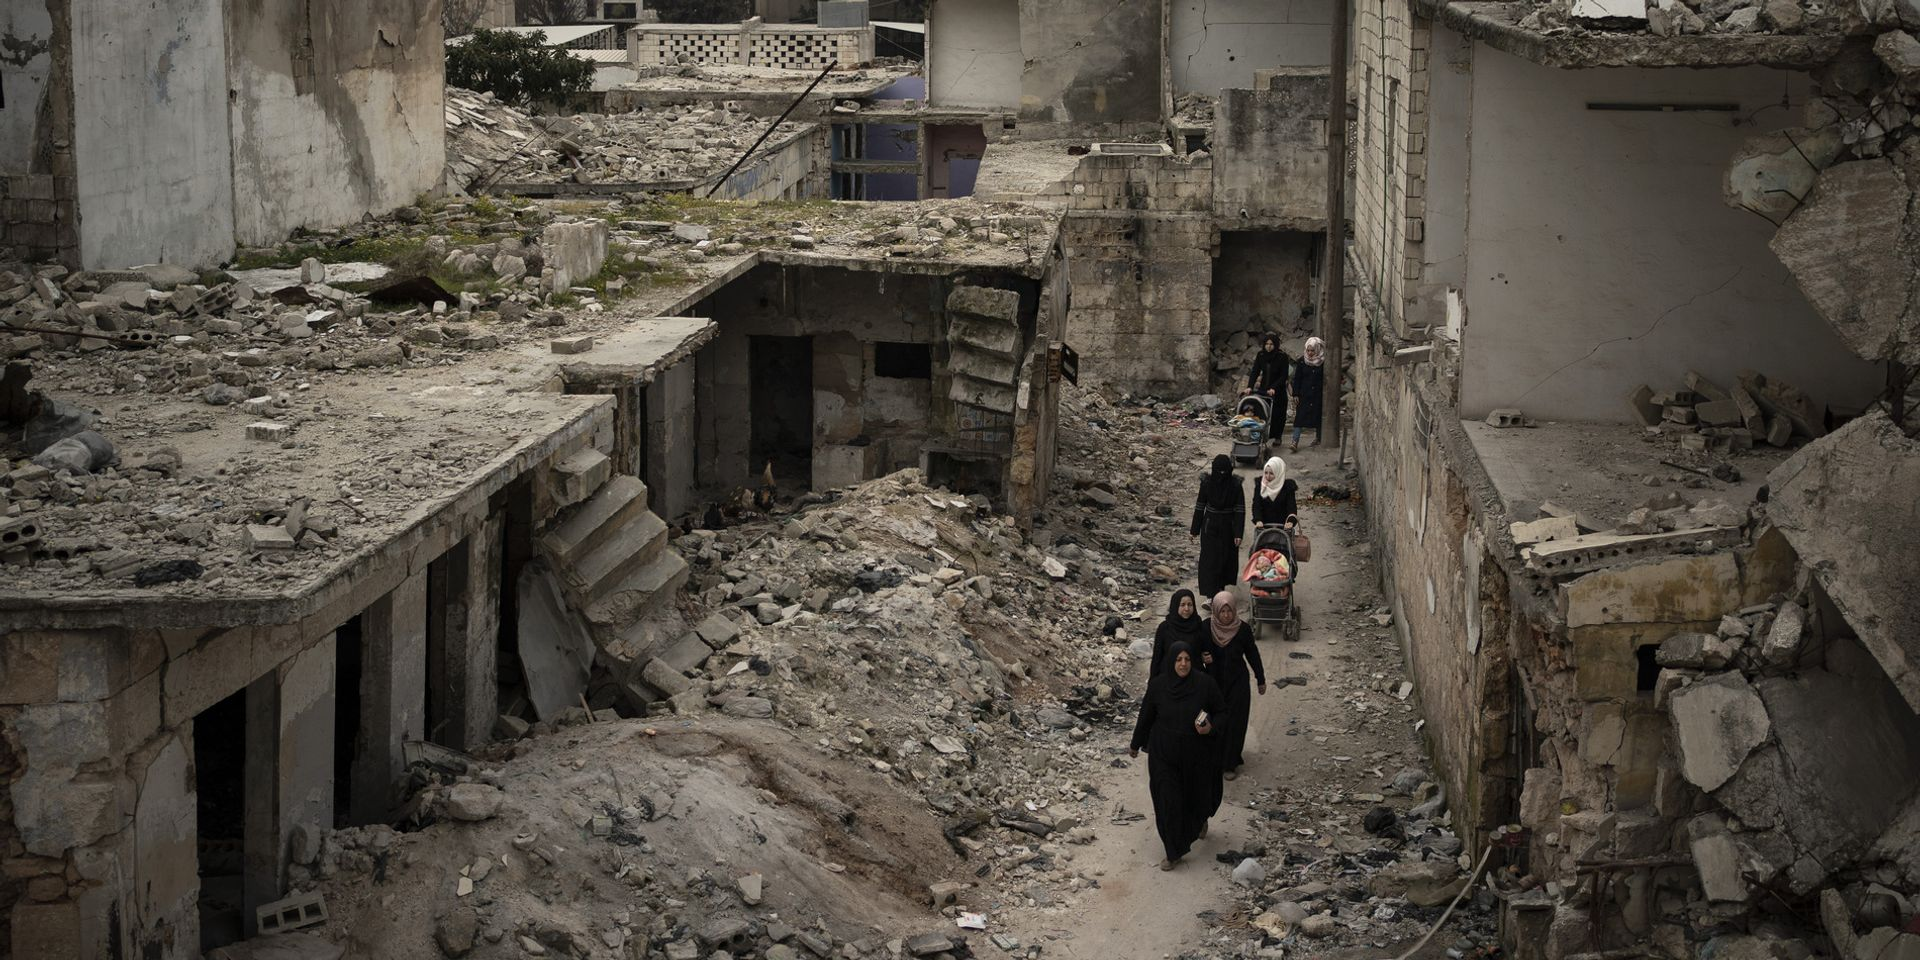 Women walk with prams through the rubble of a street with collapsed houses.